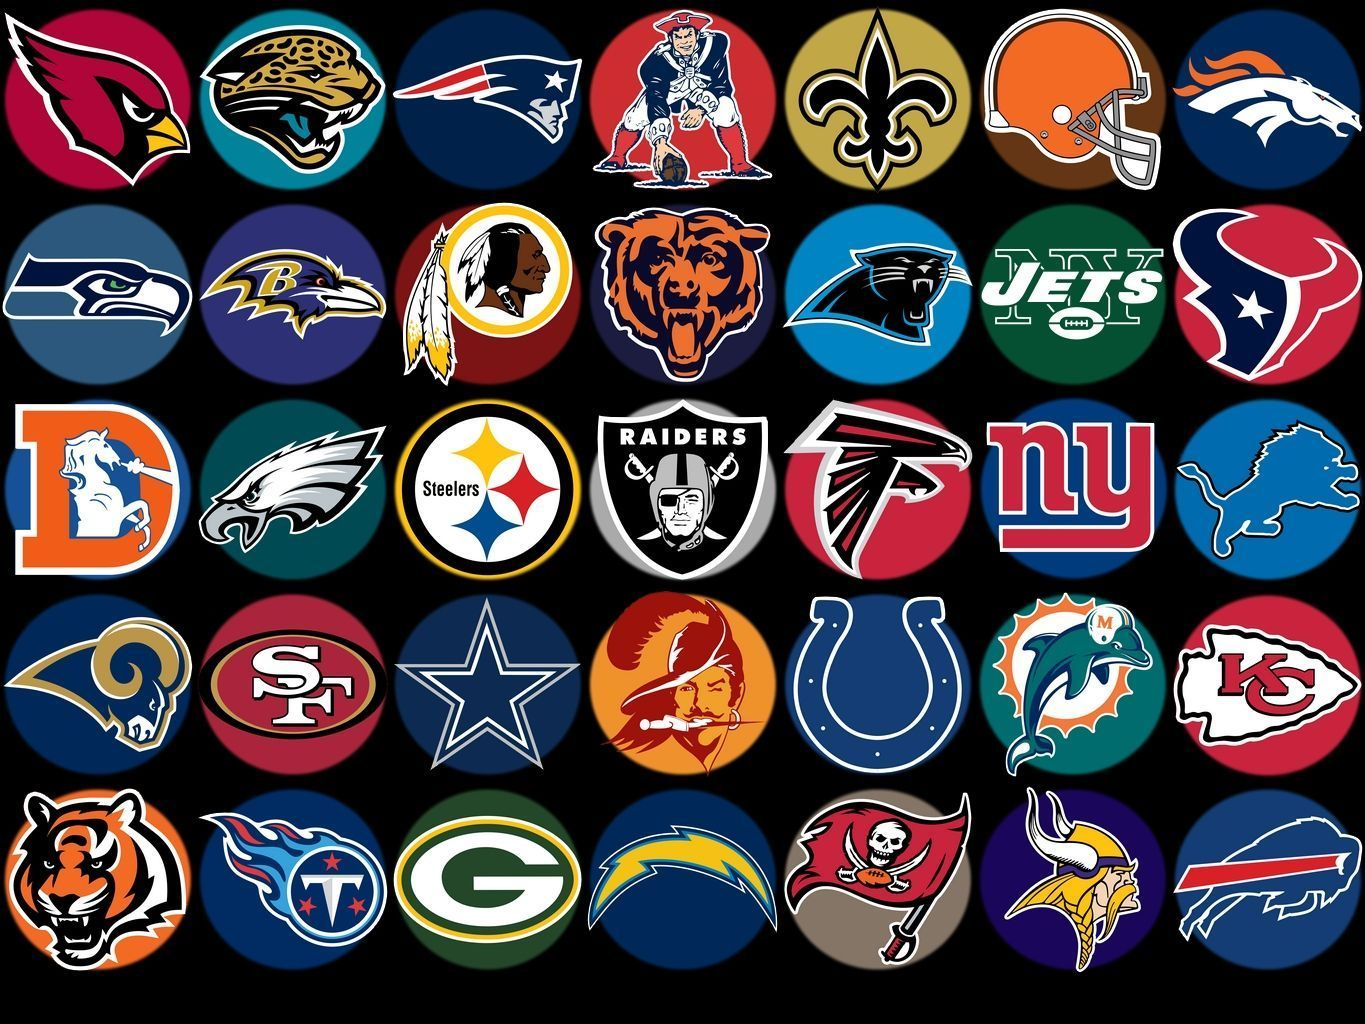 Nfl Teams Wallpapers Wallpaper 1024 640 Nfl Wallpaper 59 Wallpapers Adorable Wallpapers Nfl Teams Logos Team Wallpaper Nfl Logo